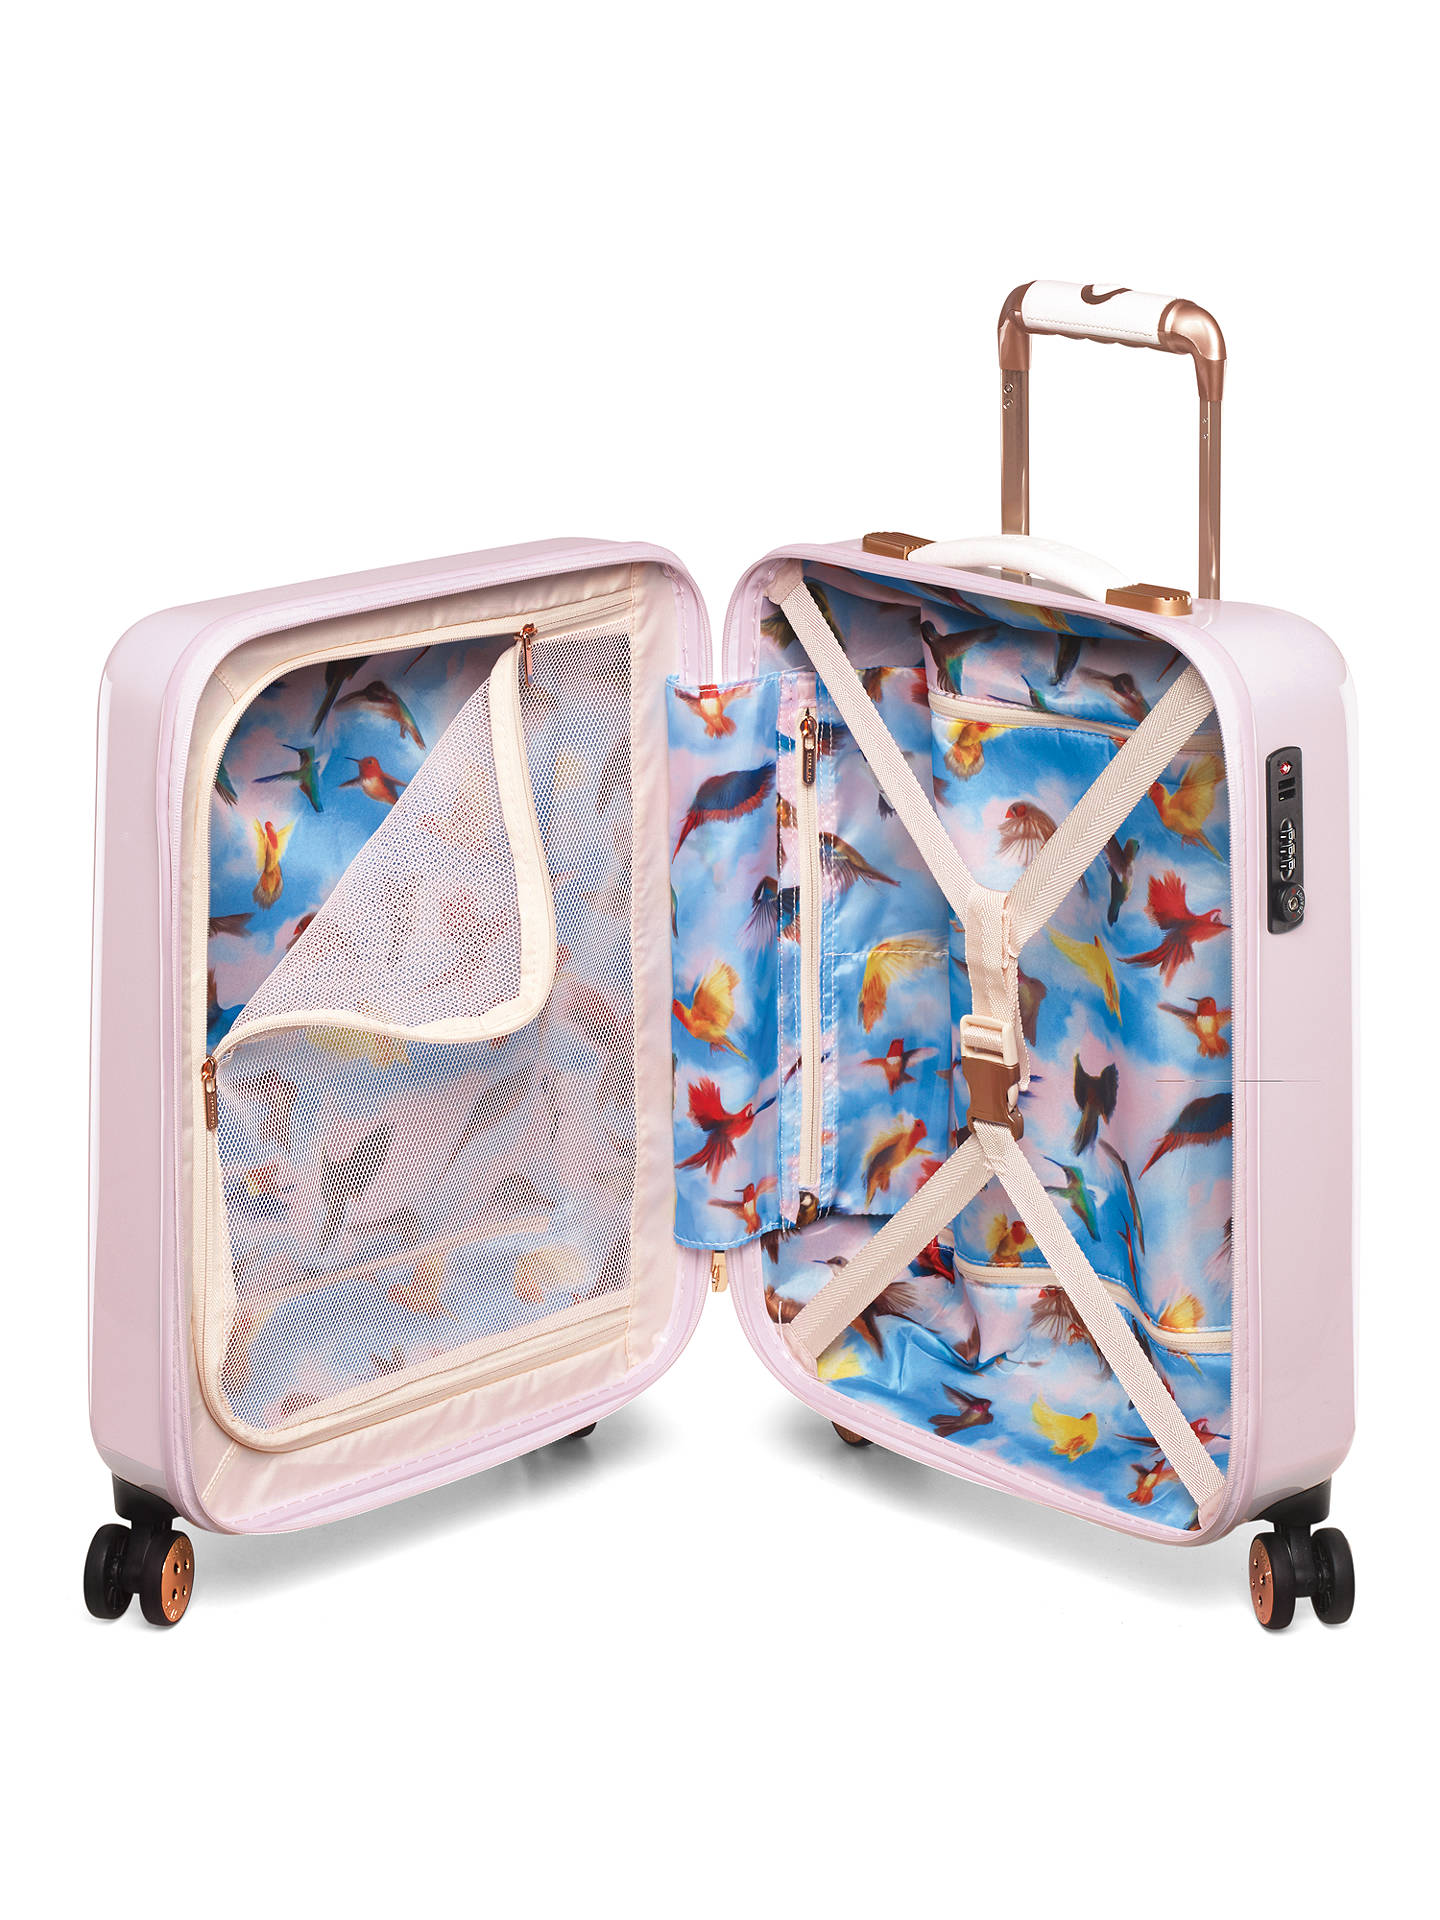 ac335898a6262 ... Buy Ted Baker Arianna Hanging Gardens 4-Wheel 54cm Suitcase